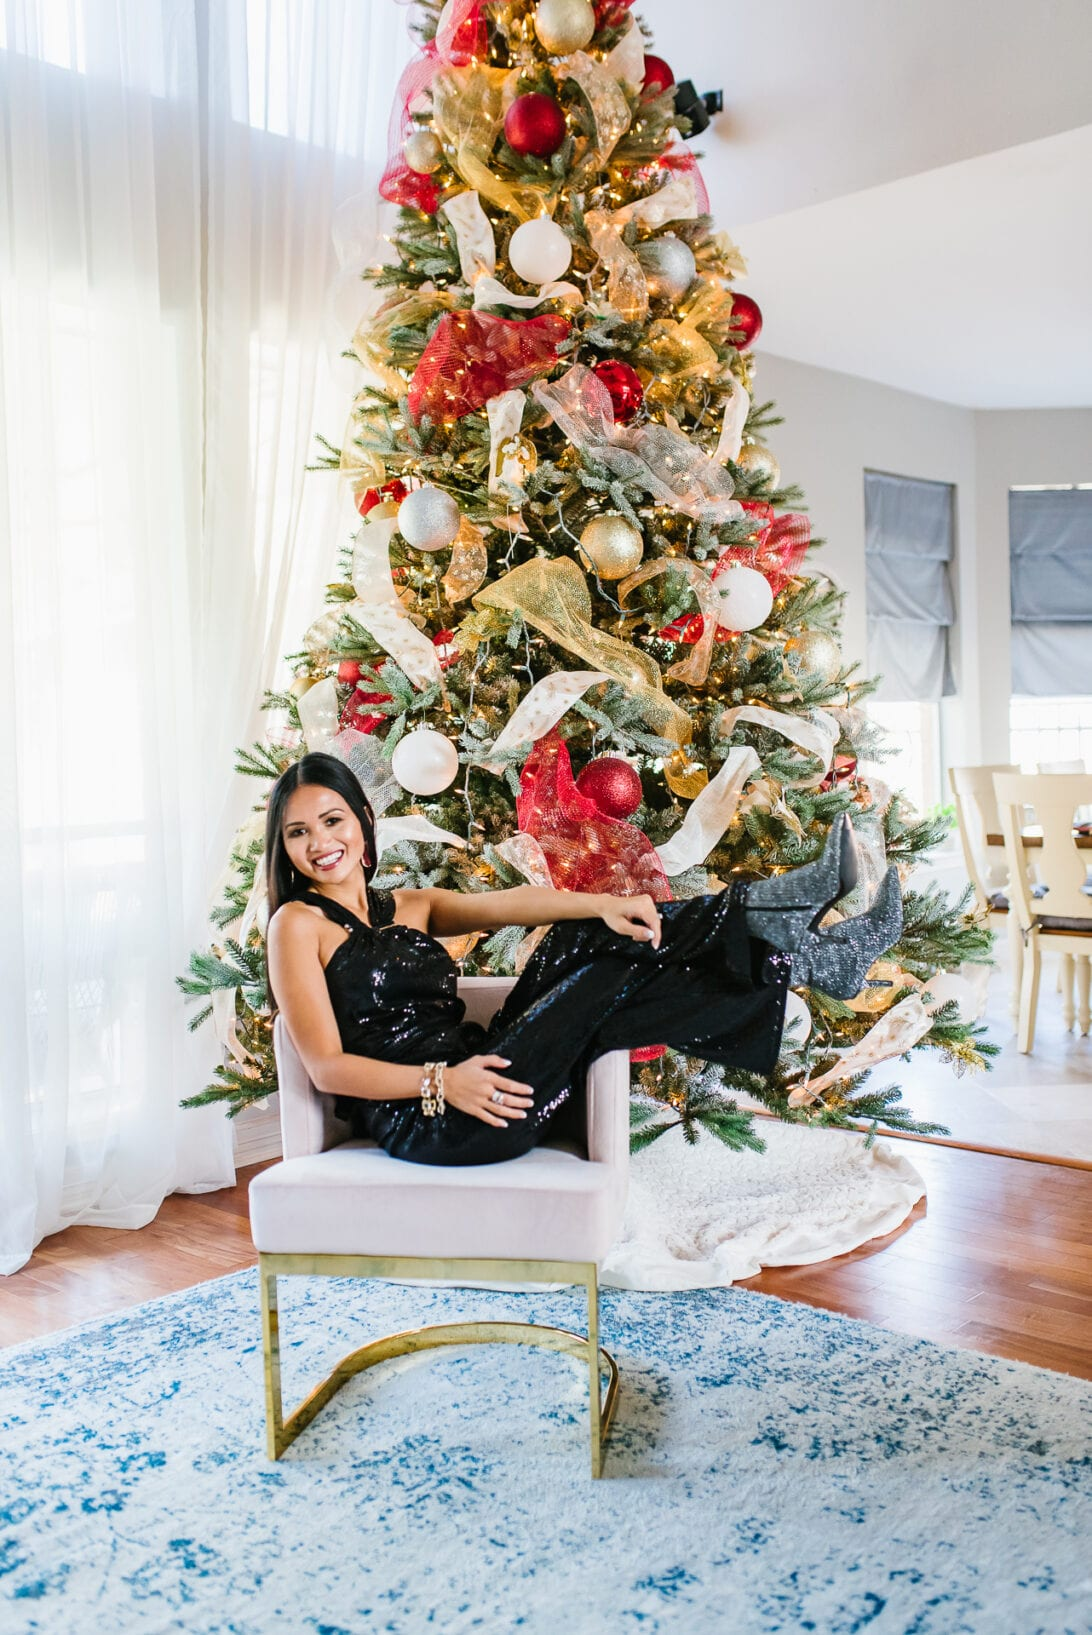 Christmas card photo, Christmas tree photography, sequin boots, glittery boots